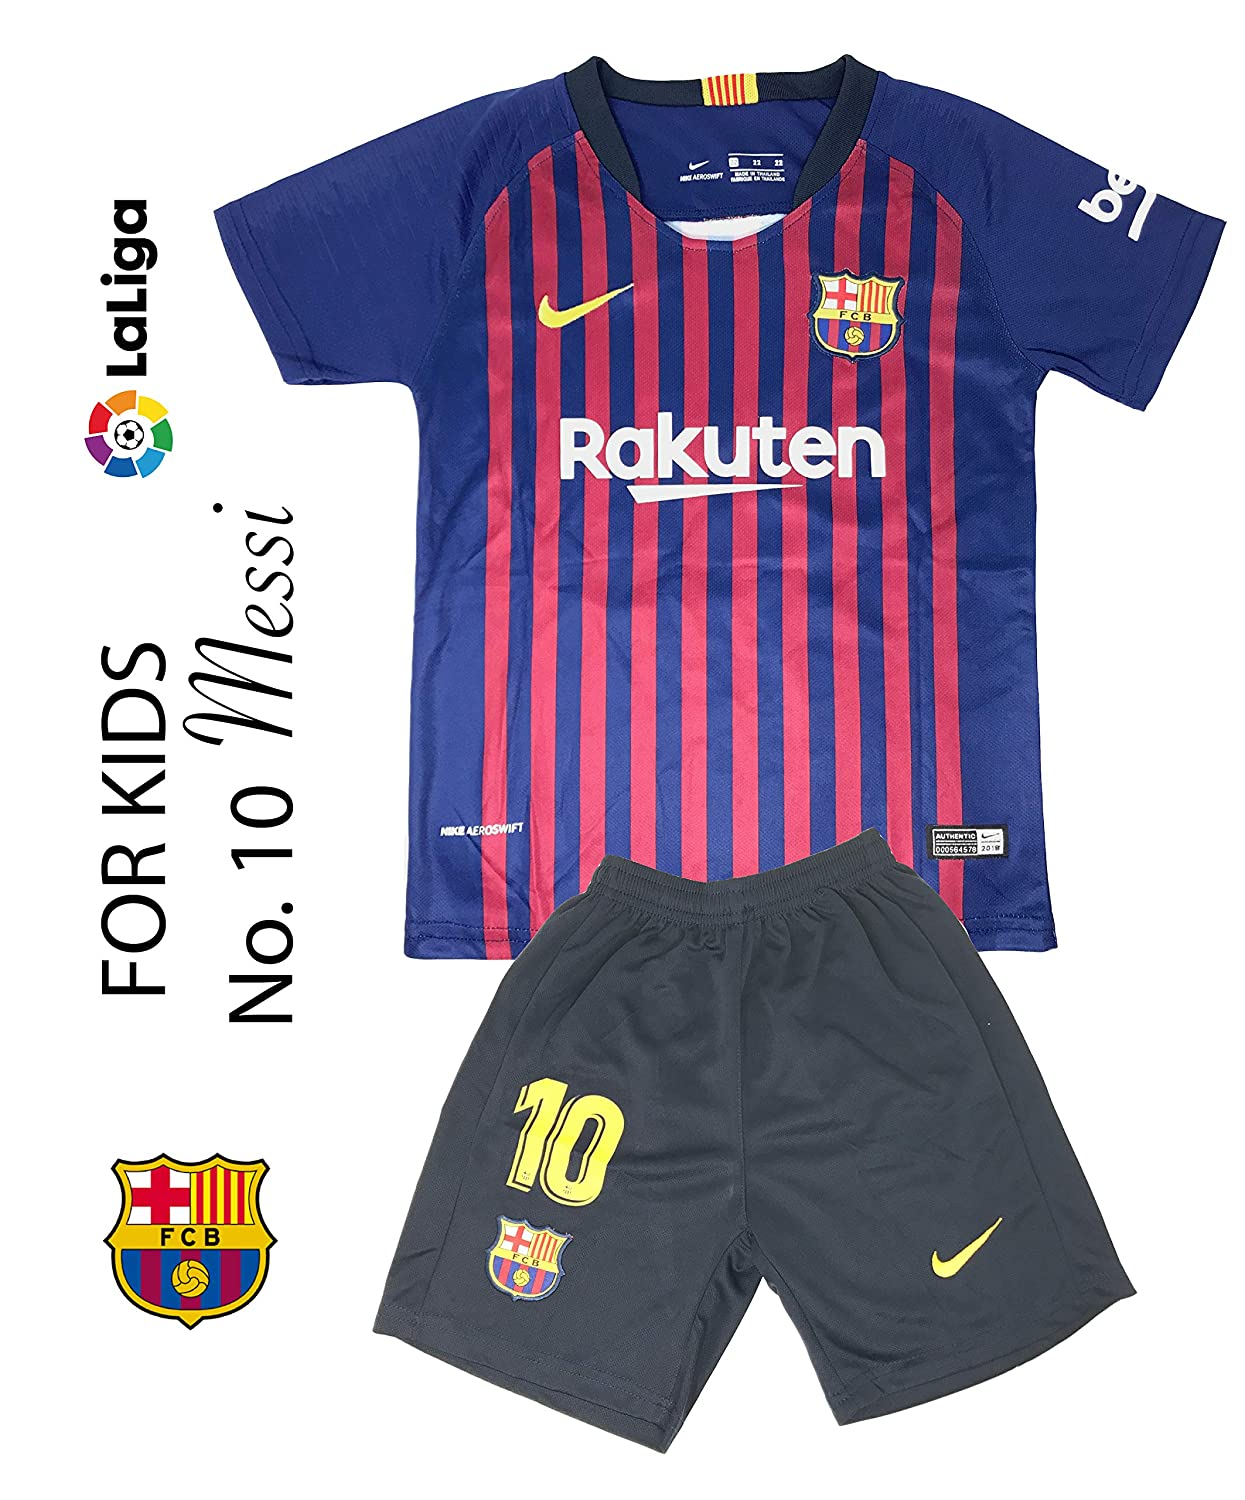 best sneakers 44863 747ec The Soccer Jersey and Short for Kids on Season 2019 - Best Soccer KIT for  Kids - Juventus Ronaldo 7 - Barcelona FC 10 Messi - Real Madrid 10 Modric